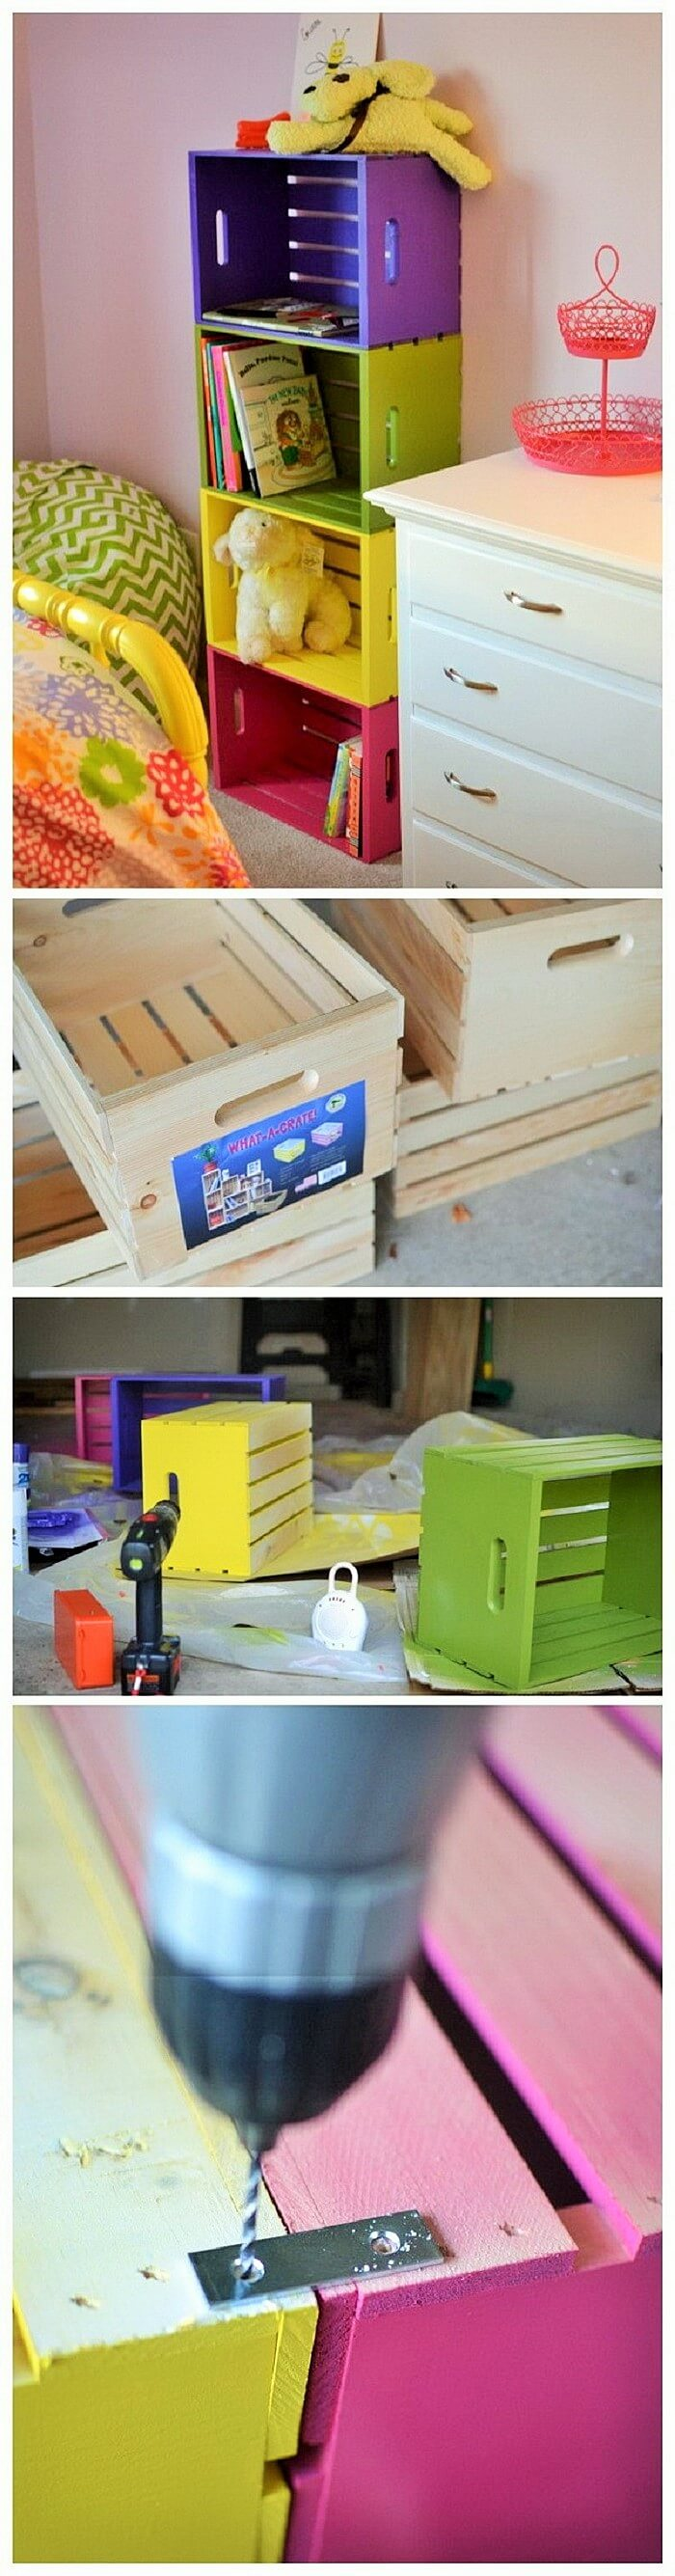 Diy-wood-crate-projects-Ideas-104